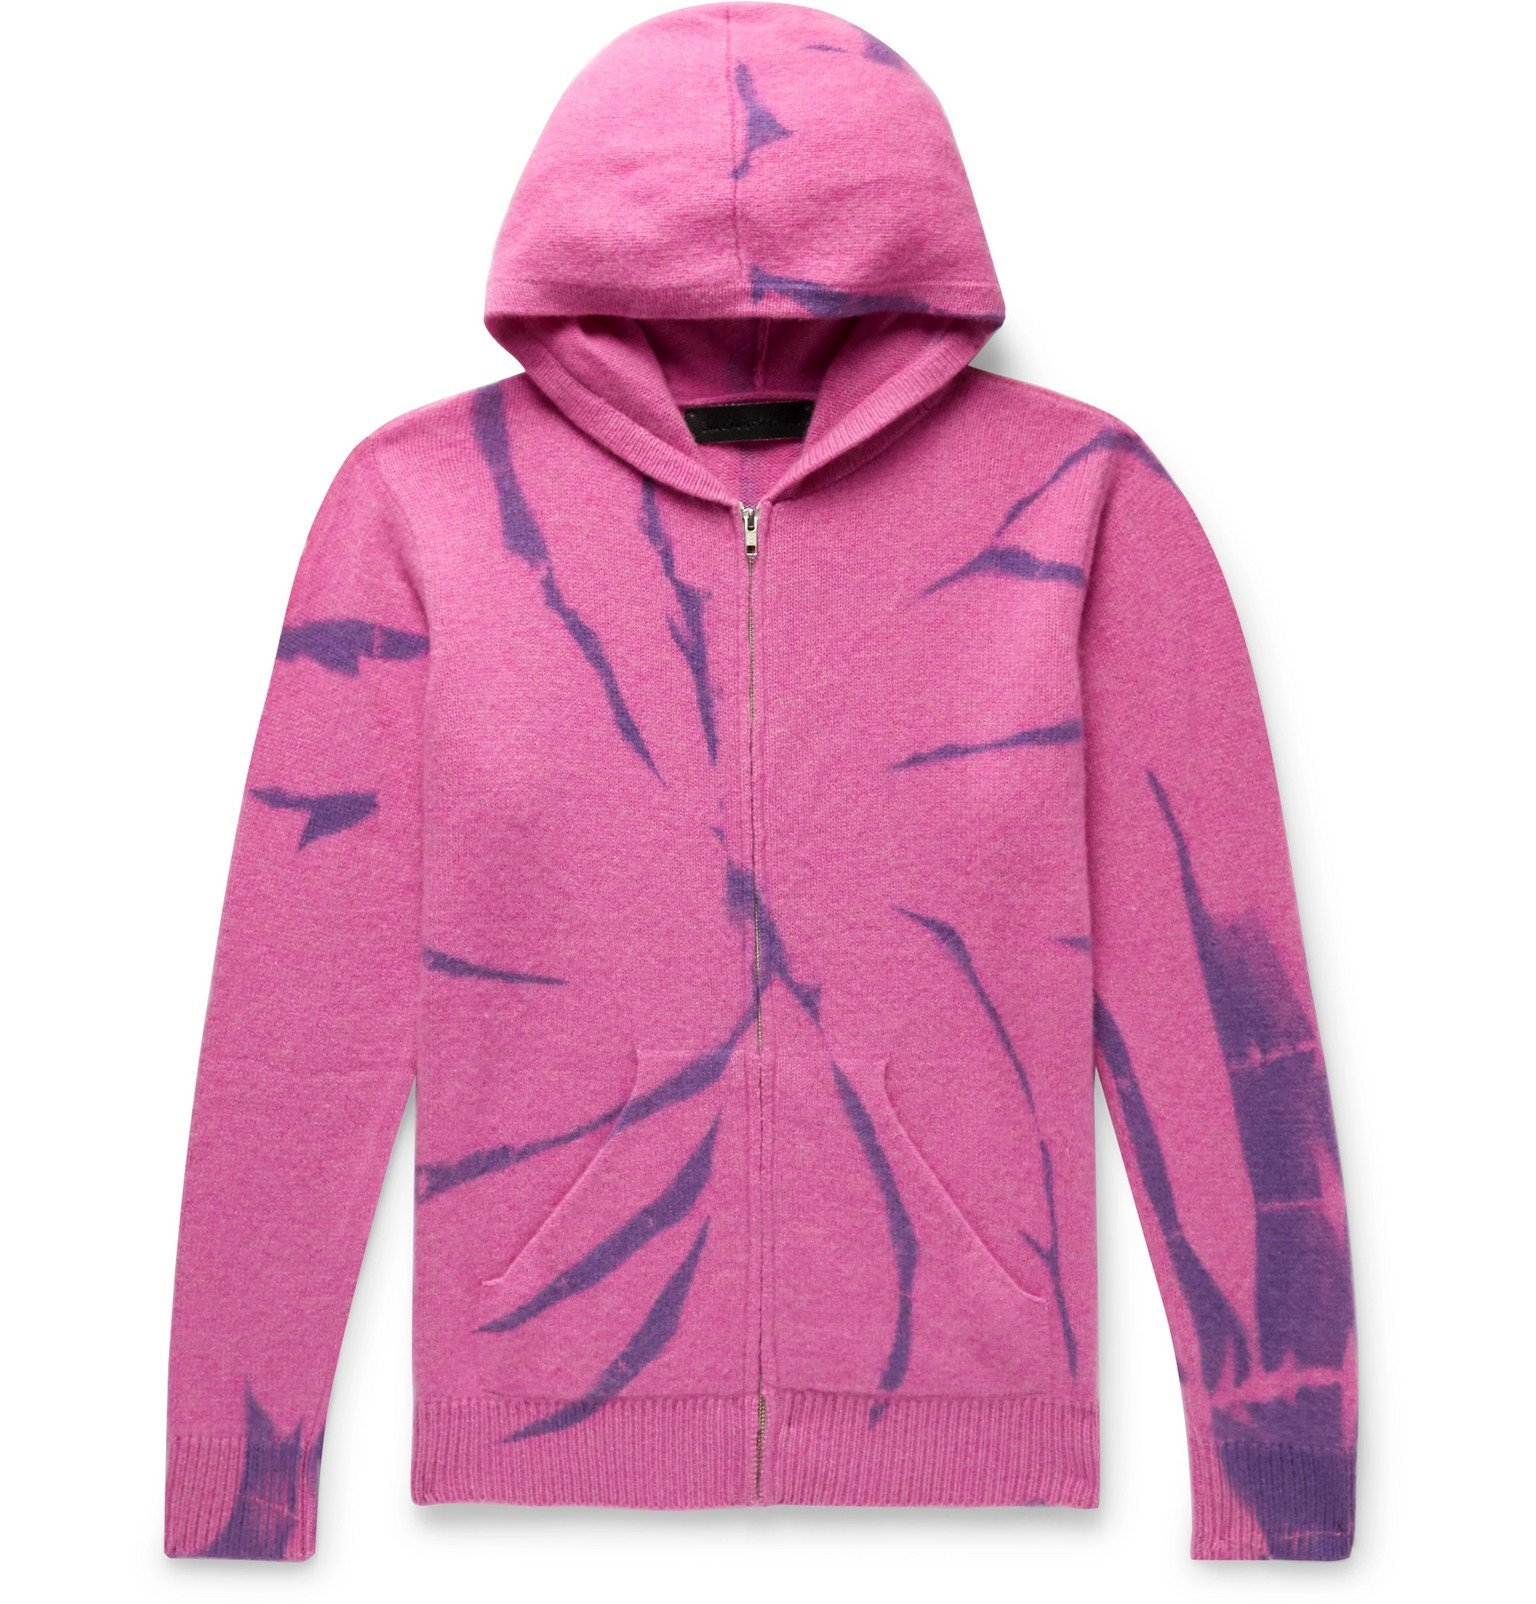 The Elder Statesman - Tie-Dyed Cashmere Zip-Up Hoodie - Pink